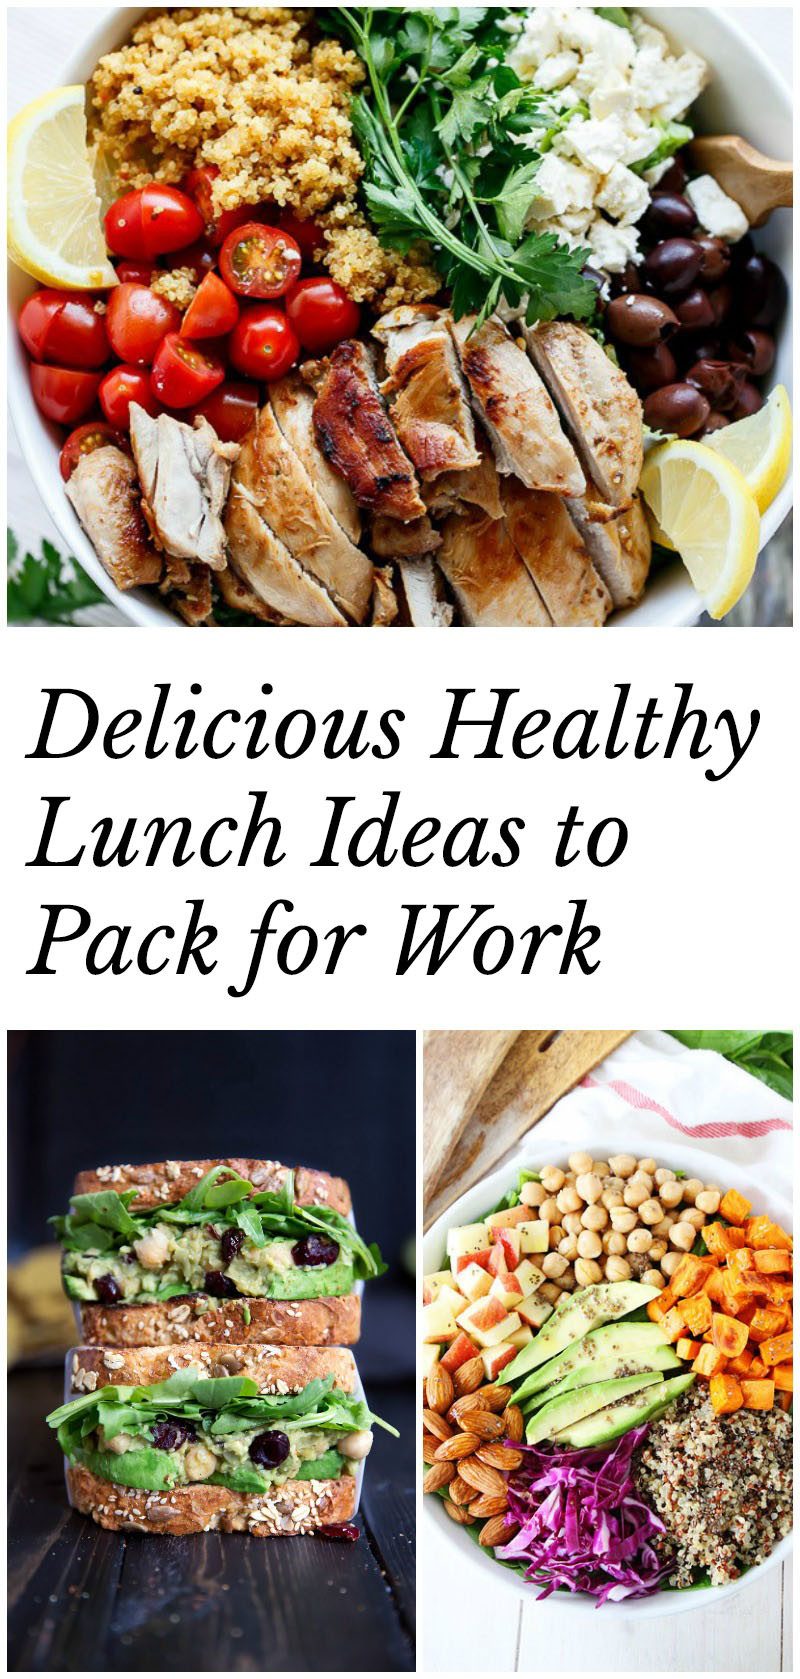 Healthy Snacks To Pack For Lunch  Healthy Lunch Ideas to Pack for Work 40 recipes